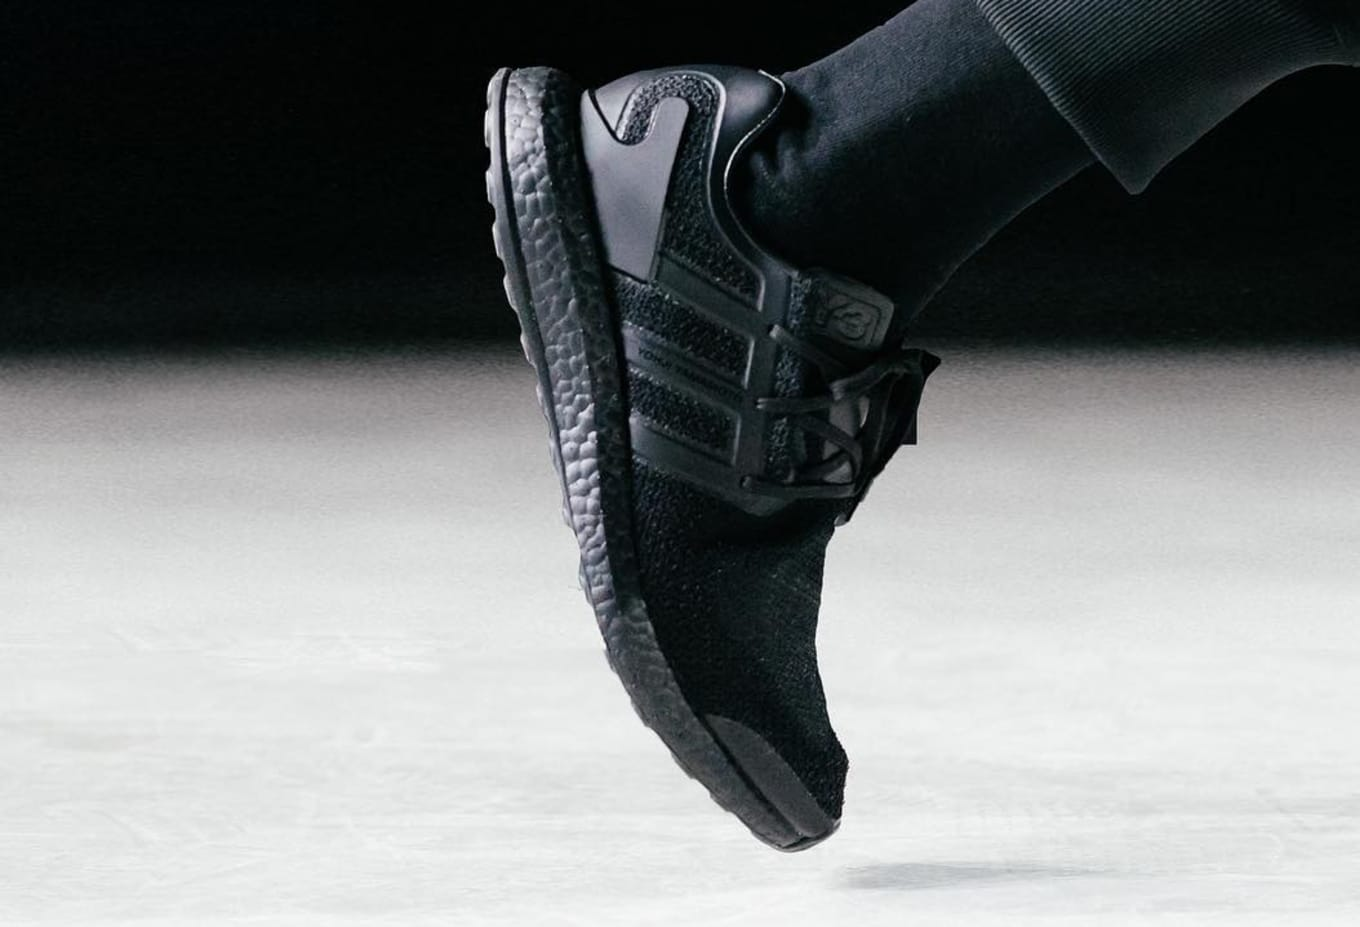 ba2102bb30d3b Adidas Y-3 Pure Boost  Triple Black.  Image via  adidasy3 on Instagram